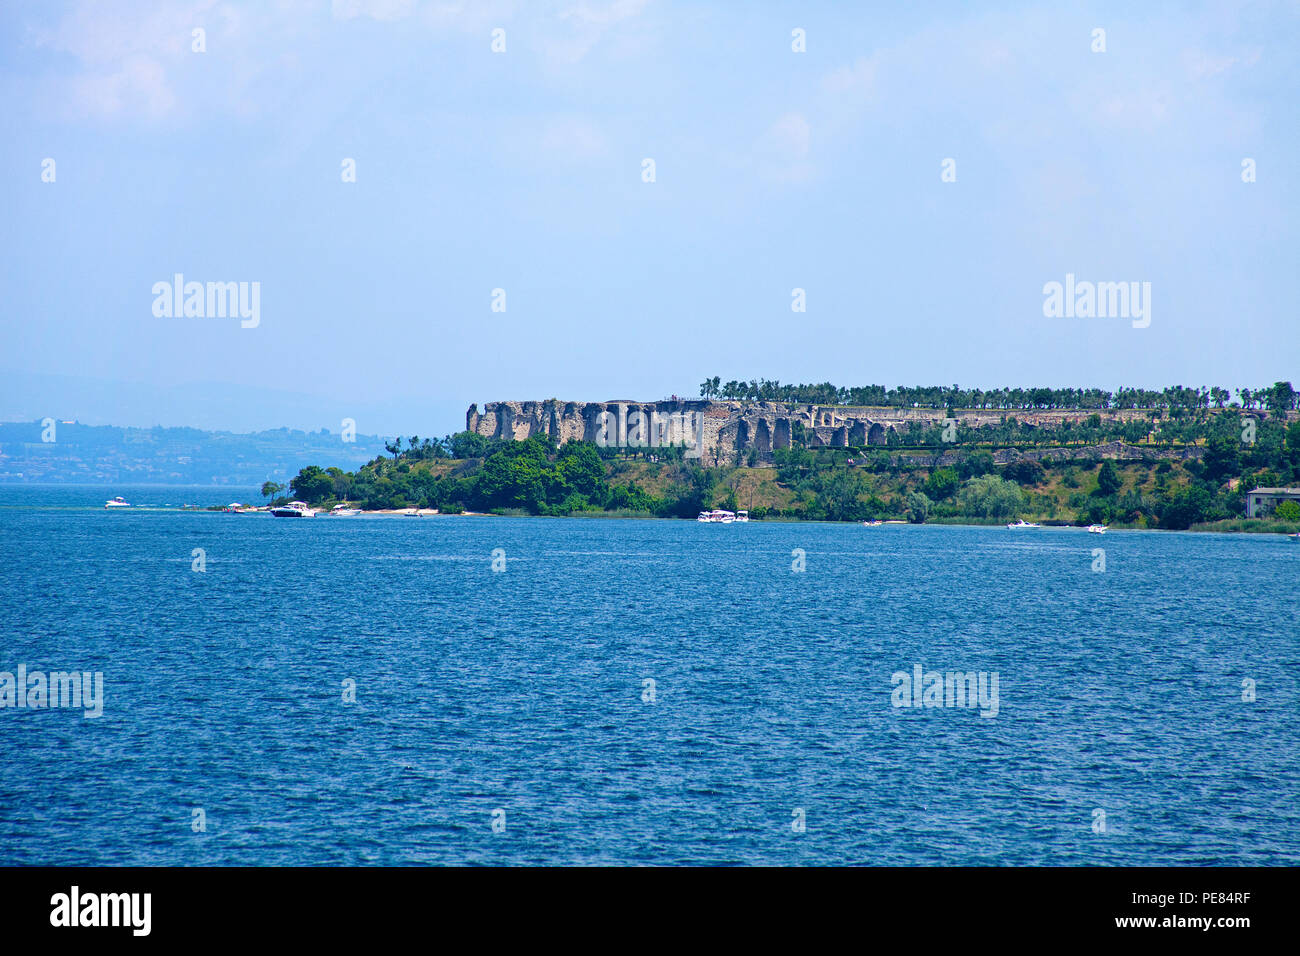 Grotto of Catullus, above ruins of ancient roman villas, Sirmione, Lake Garda, Lombardy, Italy Stock Photo